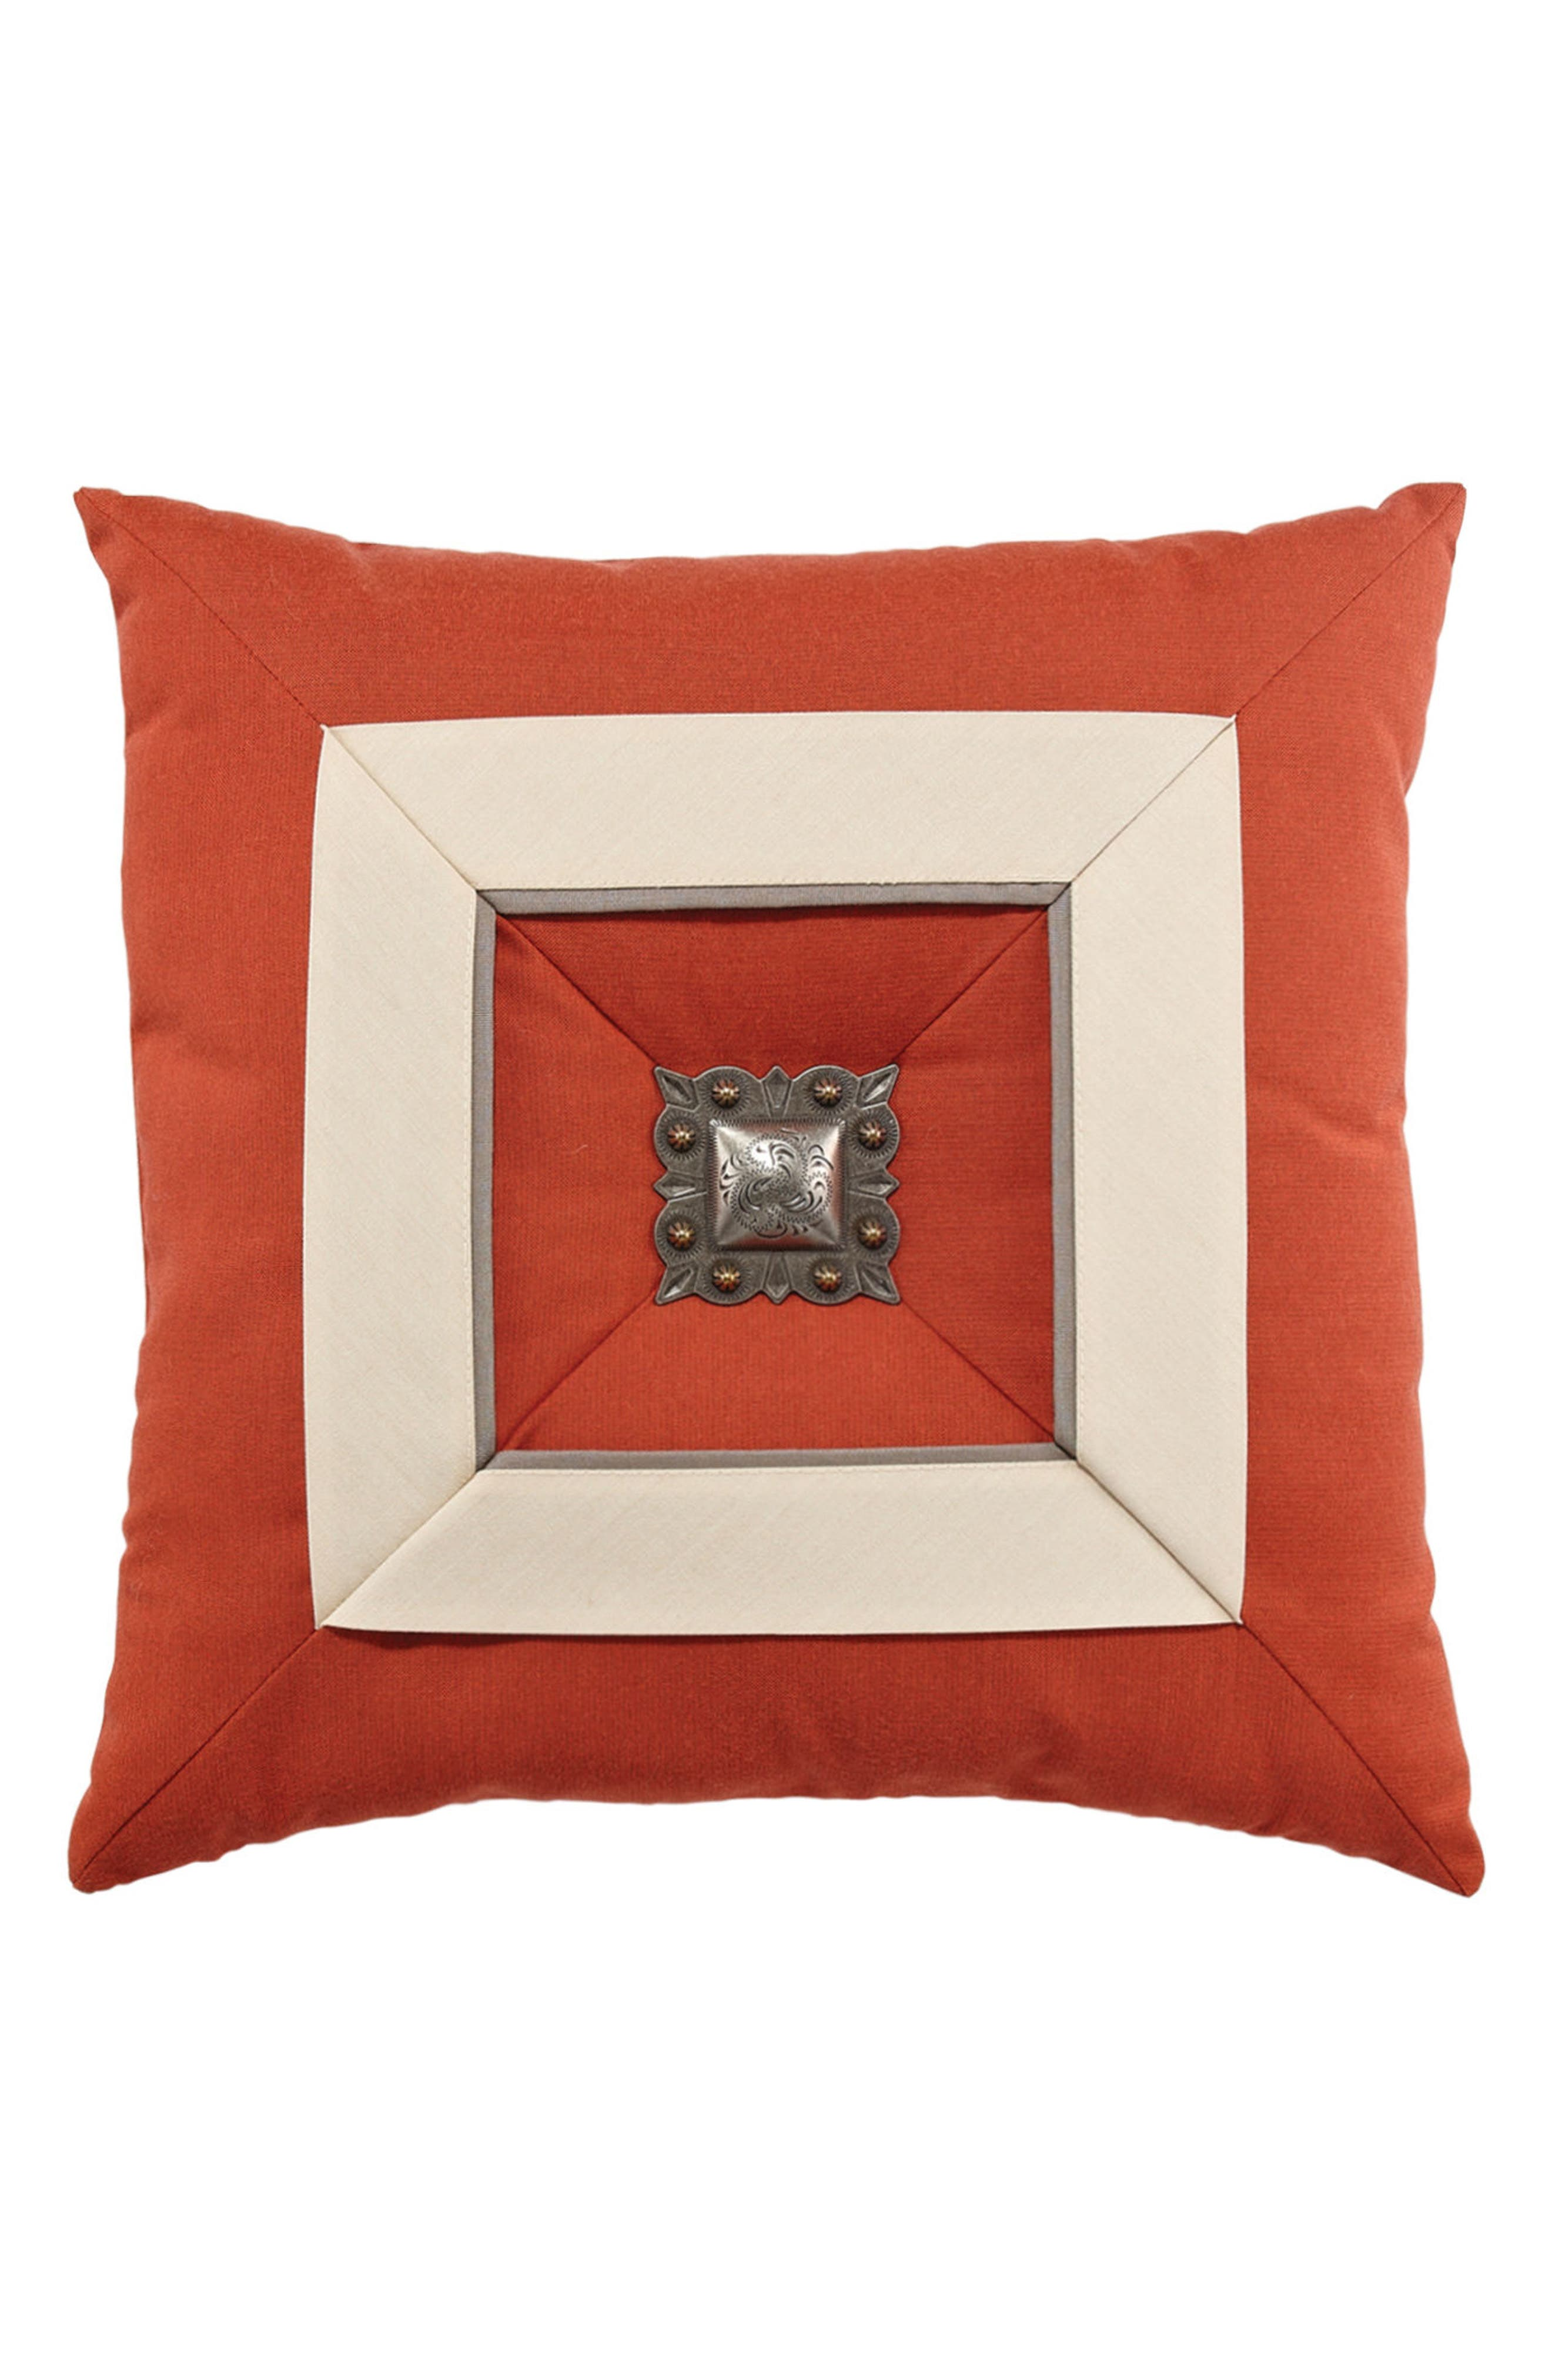 Elaine Smith Coral Cruise Accent Pillow